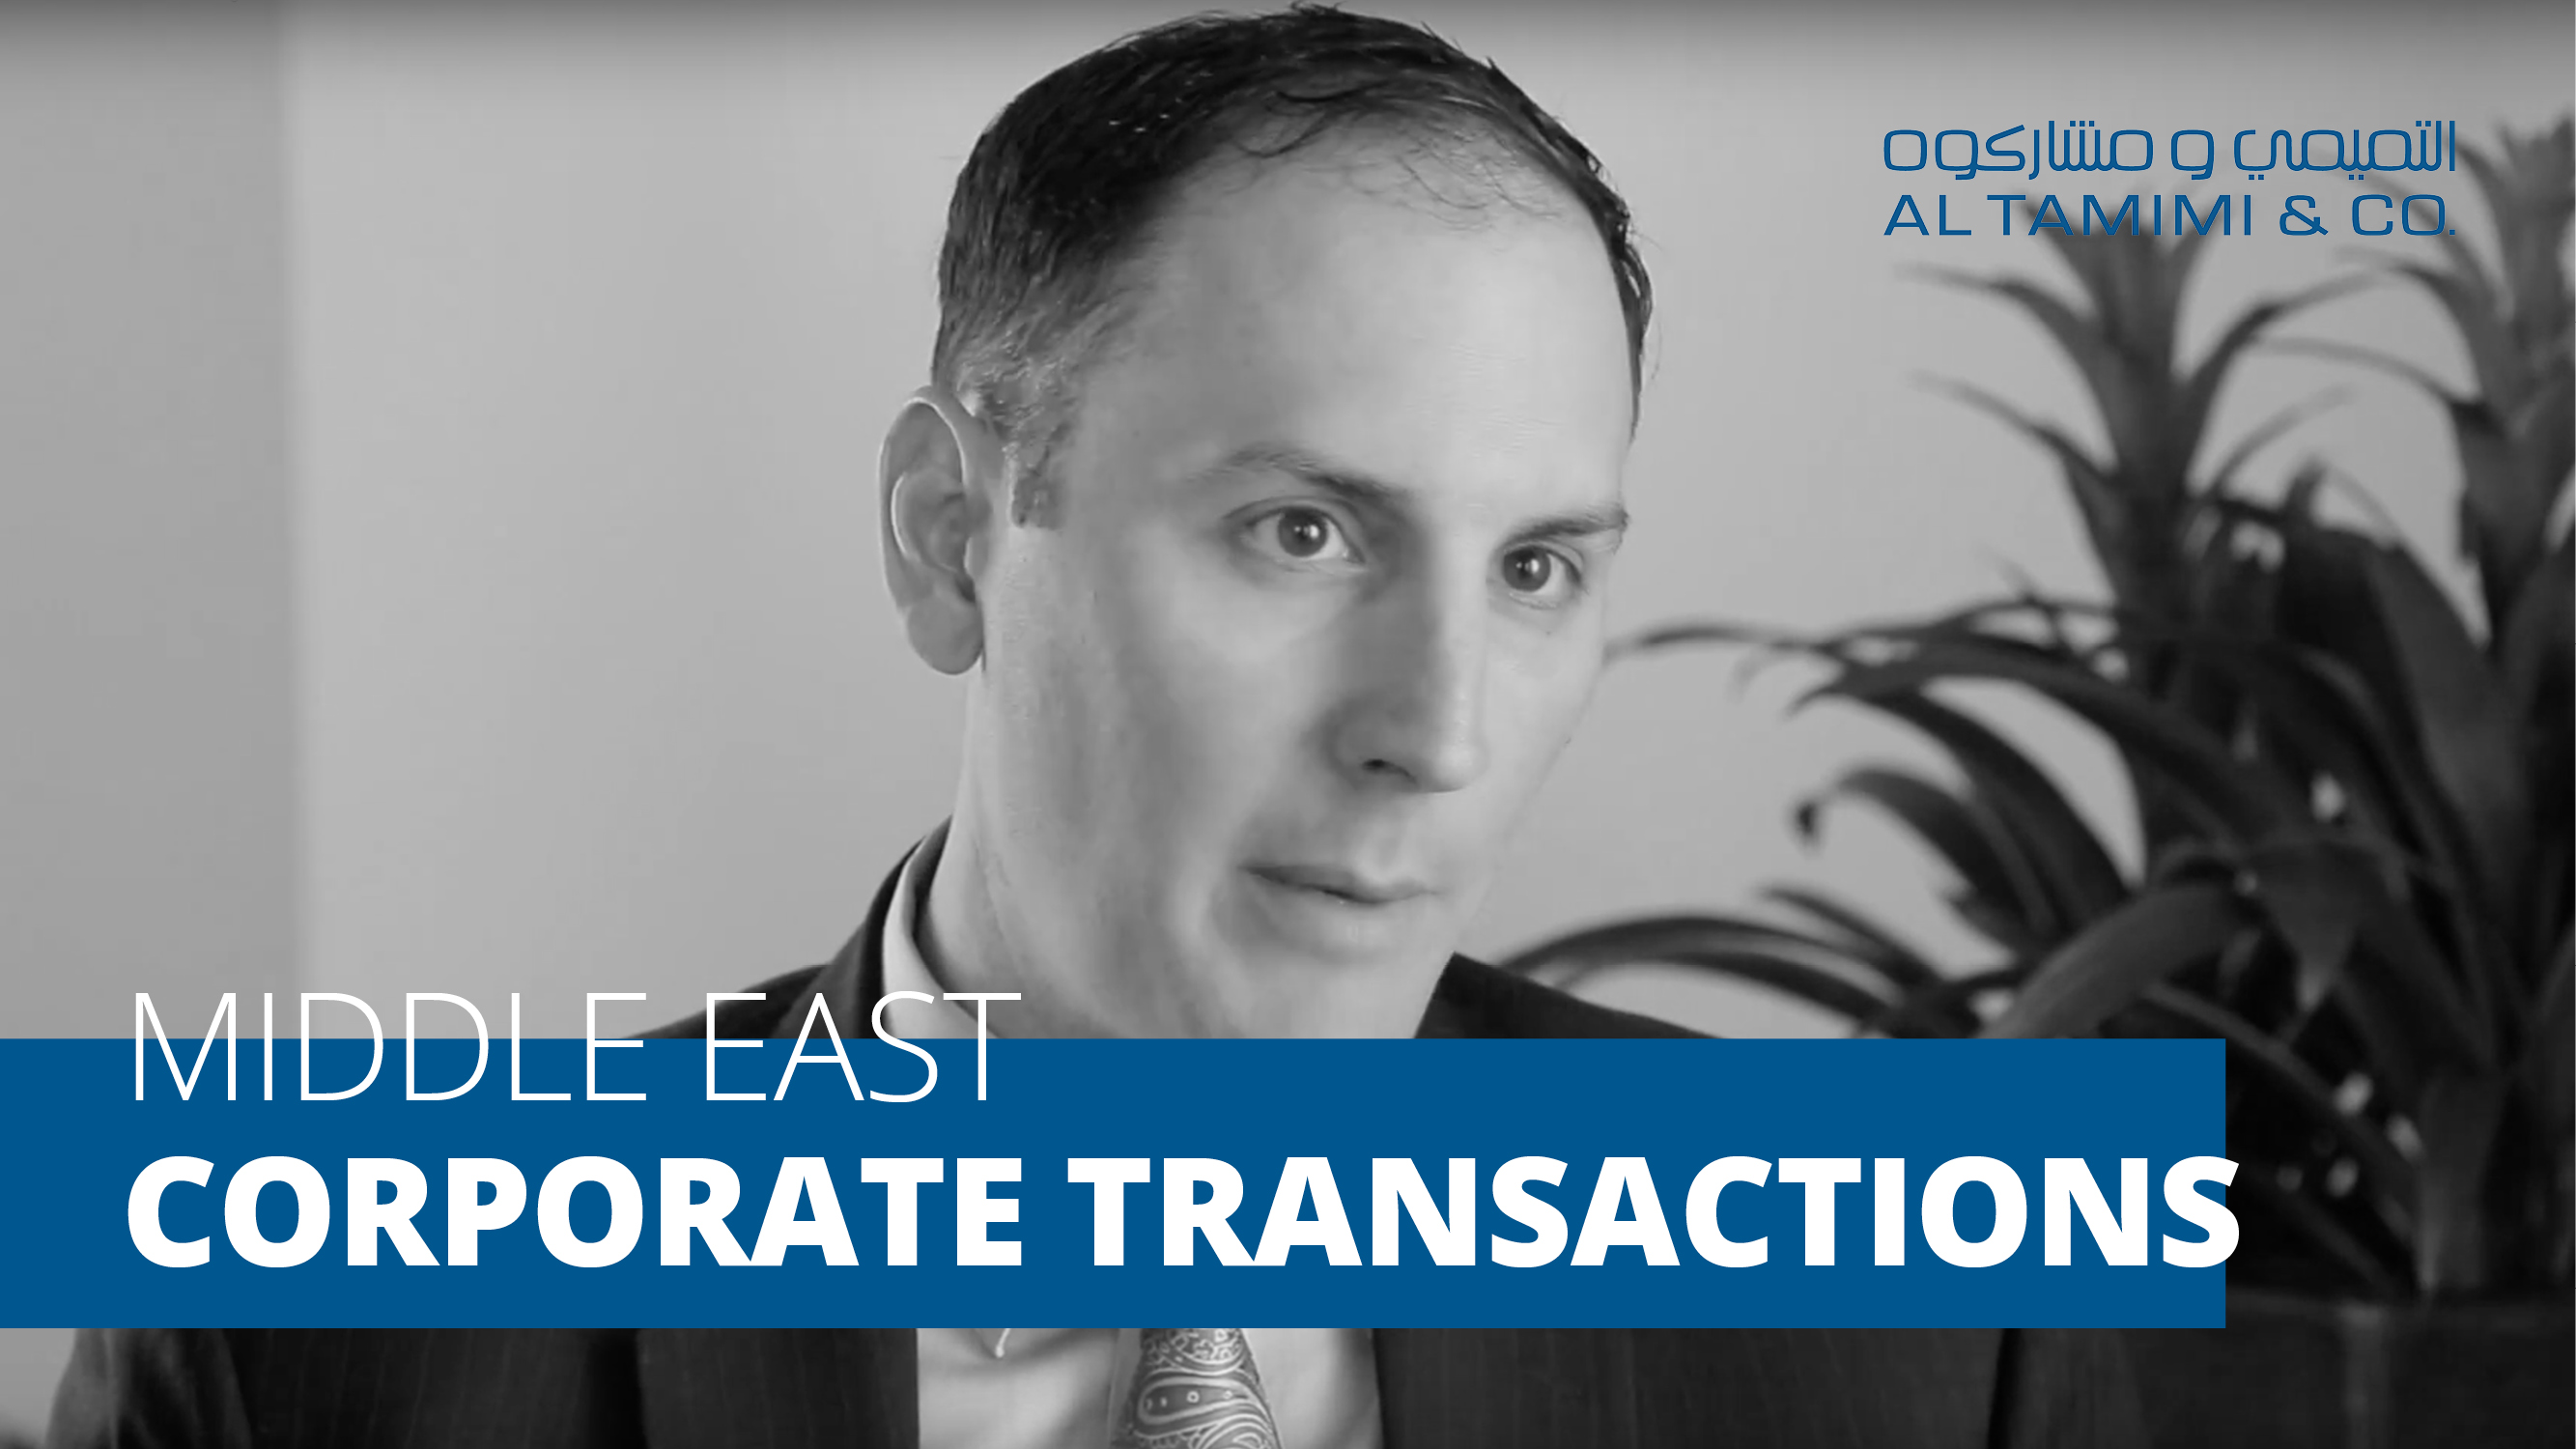 Significant Recent Corporate Transactions in the Middle East